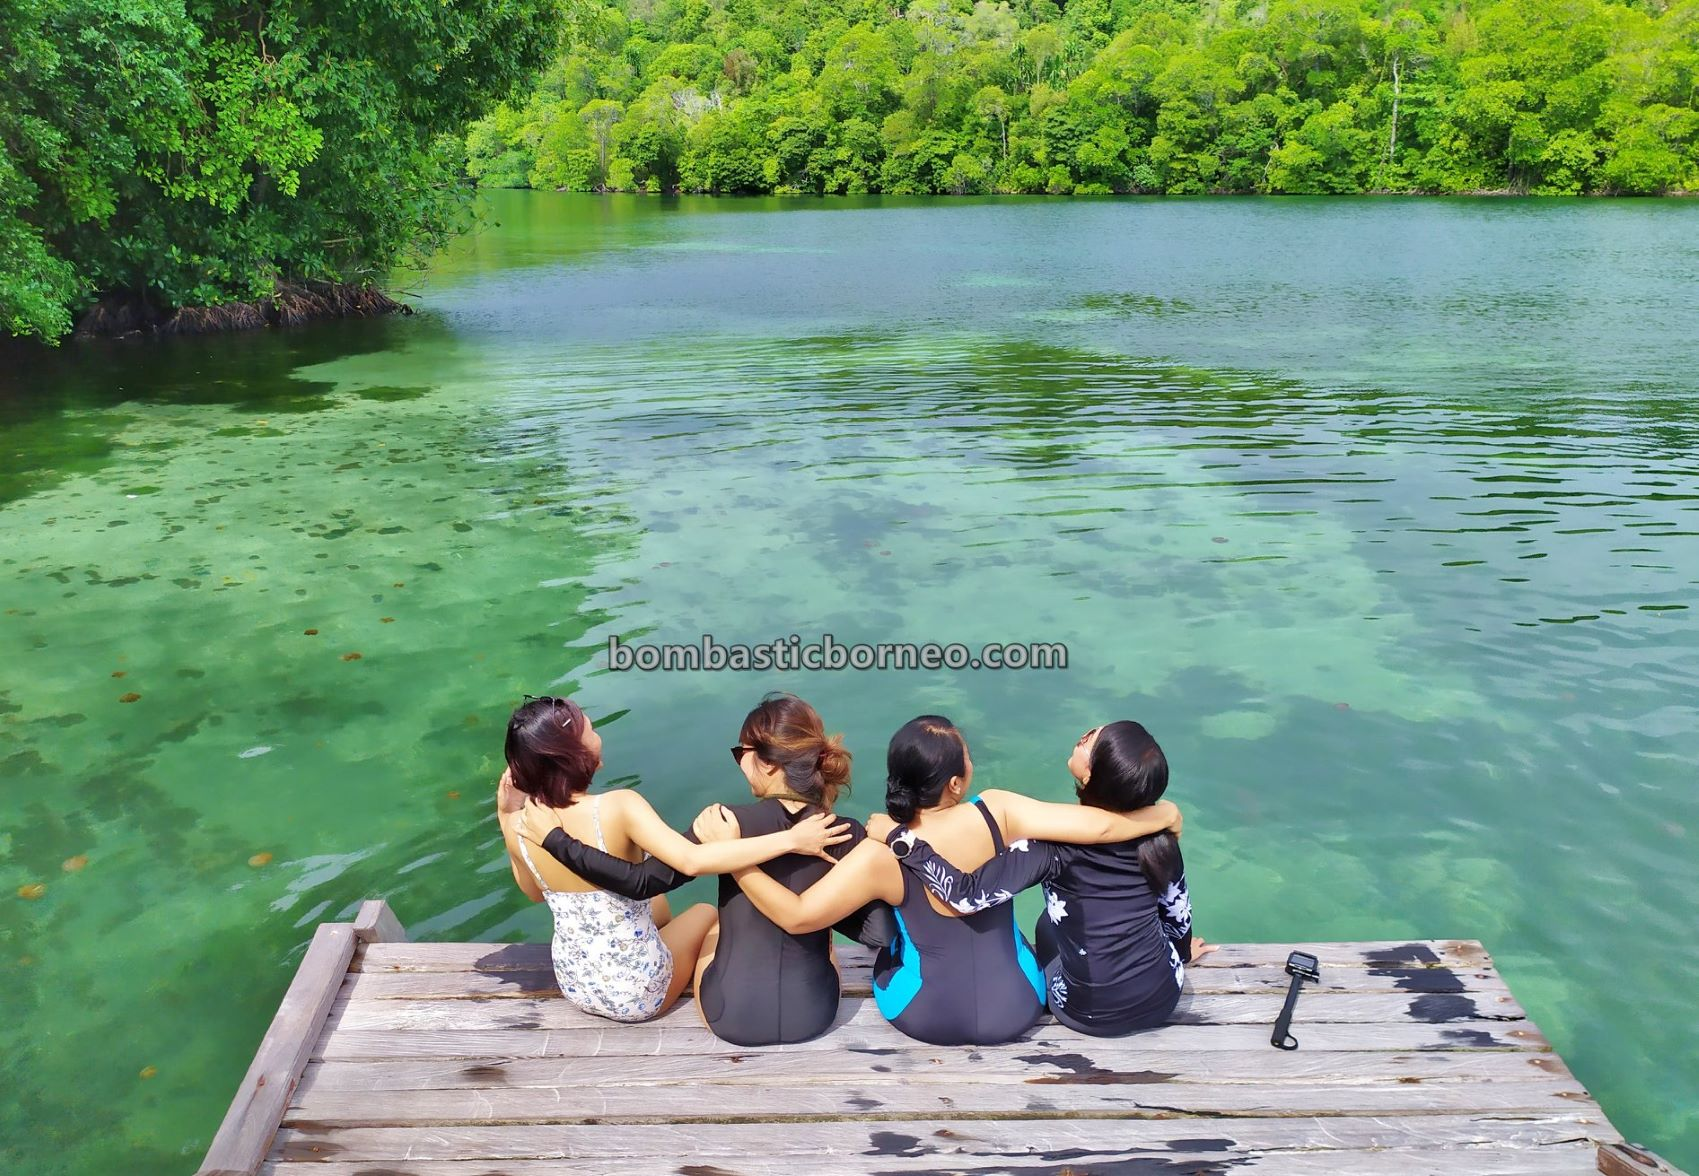 Kepulauan Derawan, Kakaban Island, Danau Ubur-Ubur, Stingless Jellyfish Lake, nature, backpackers, Snorkelling, hidden paradise, East Kalimantan, Wonderful Indonesia, Objek wisata, Tourism, travel guide, Borneo,